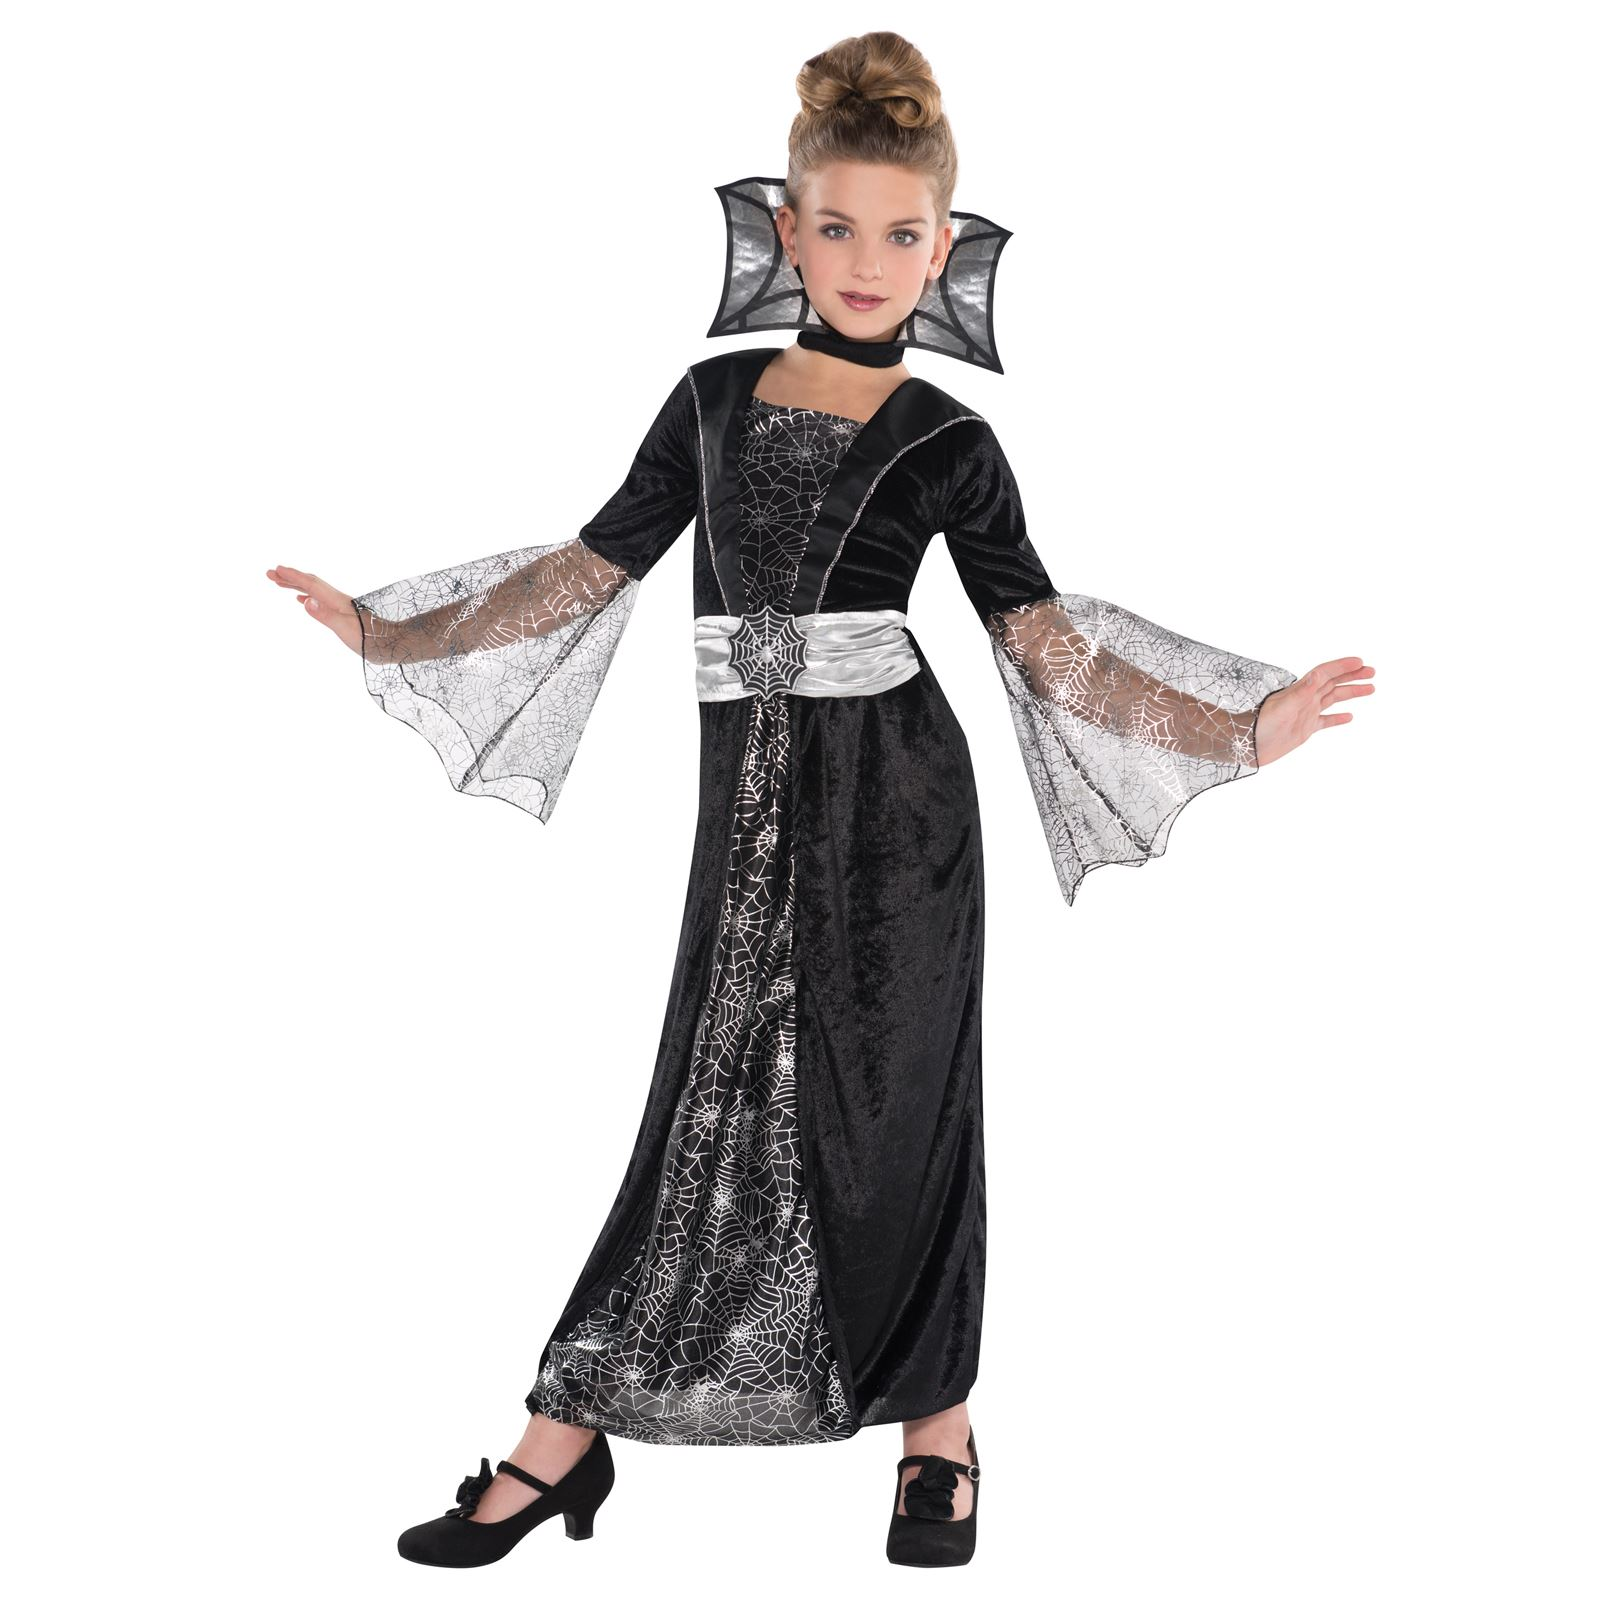 girls black vampire ghost halloween fancy dress costume outfit age 4 6 8 10 year ebay. Black Bedroom Furniture Sets. Home Design Ideas